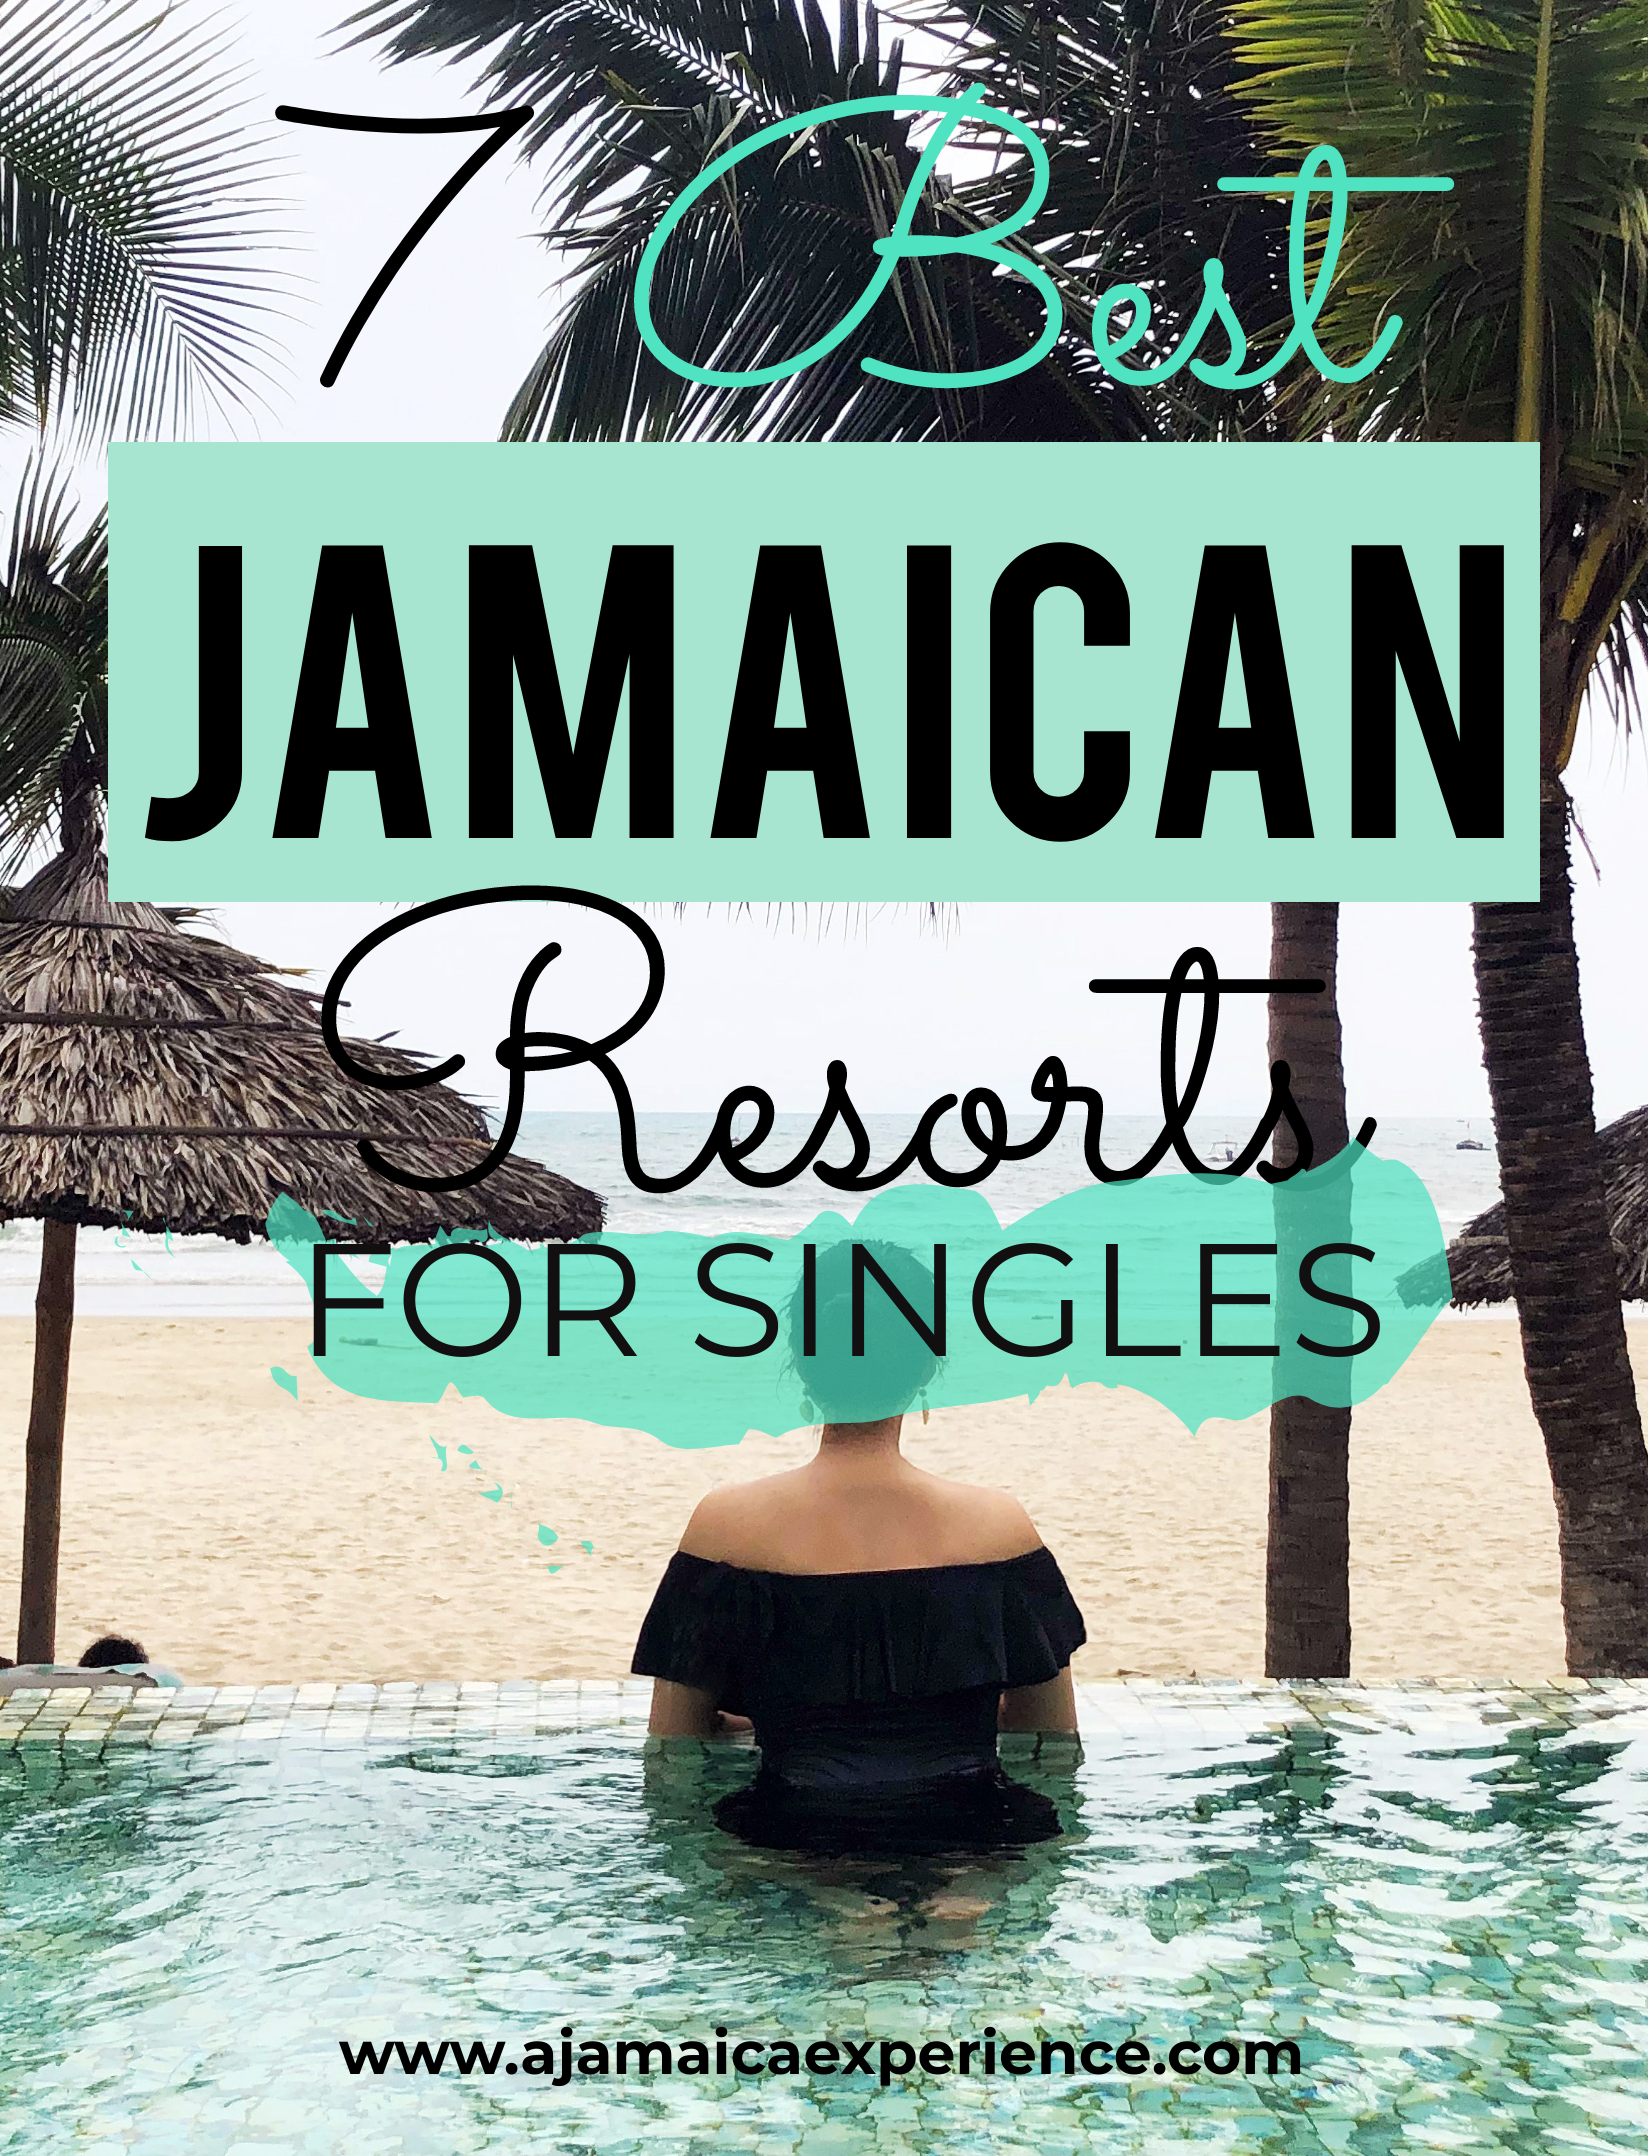 Best all inclusive vacations for singles